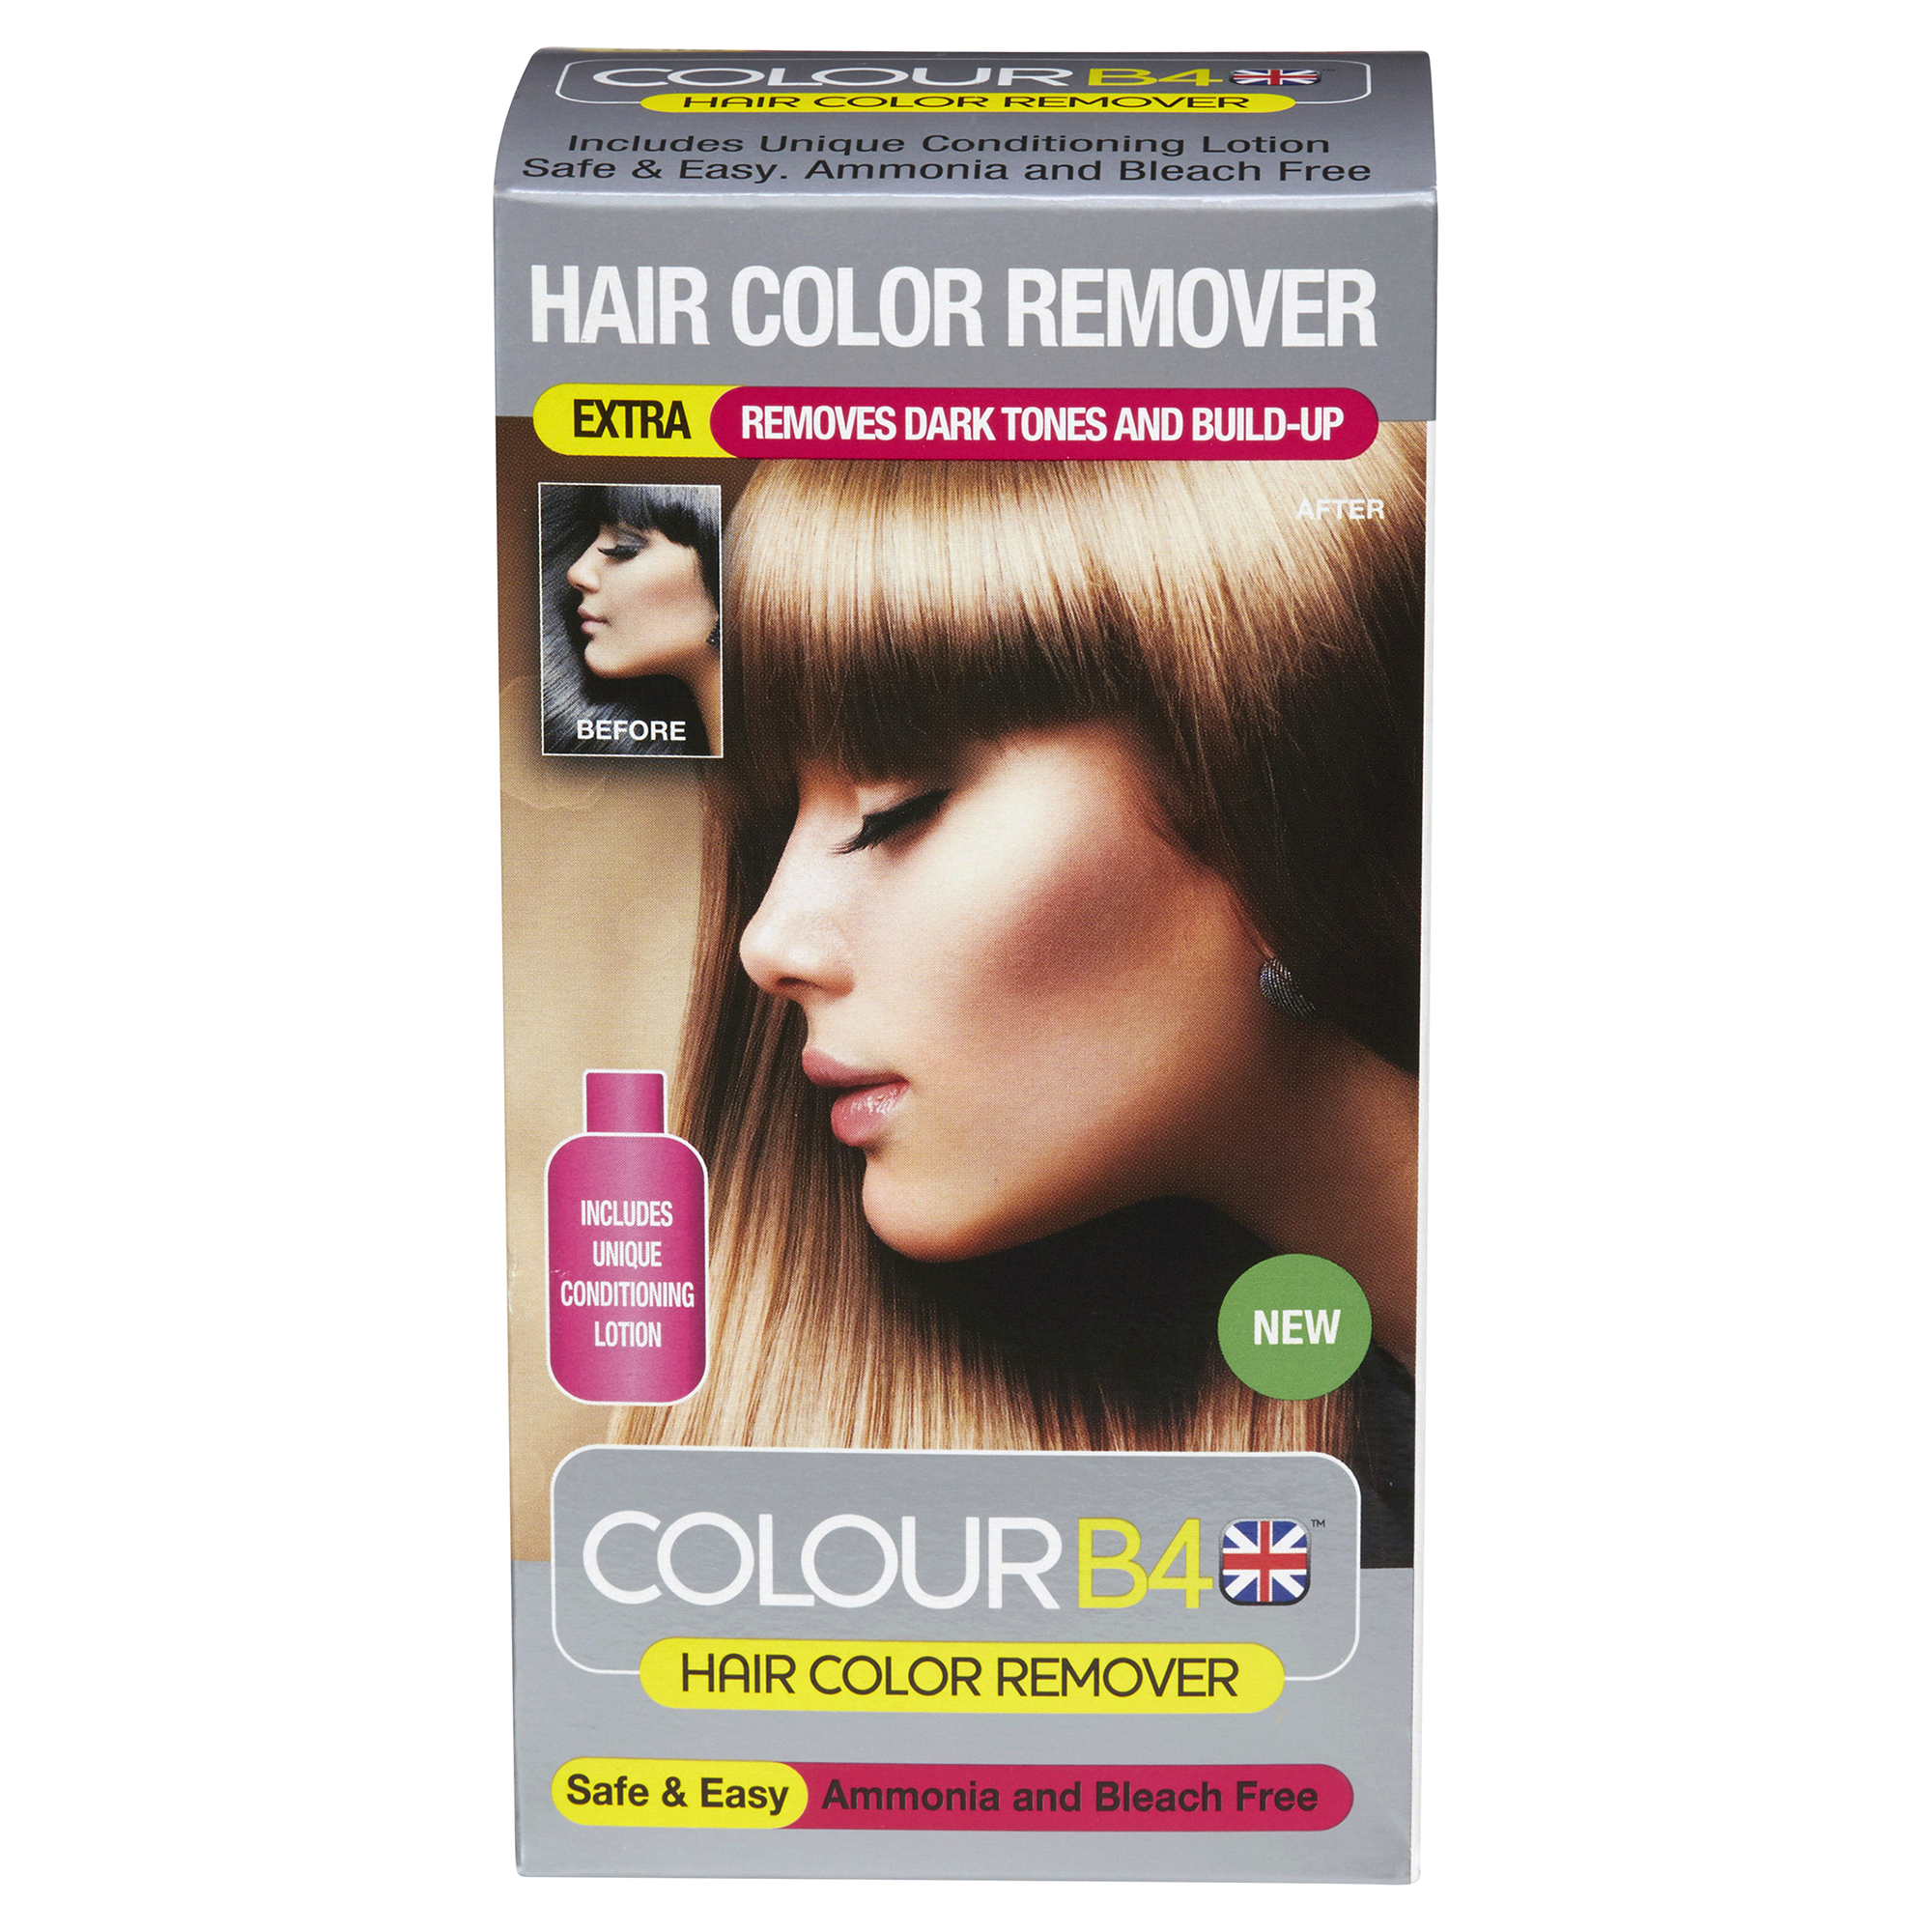 Colour B4 Hair Color Remover Extra Meijer